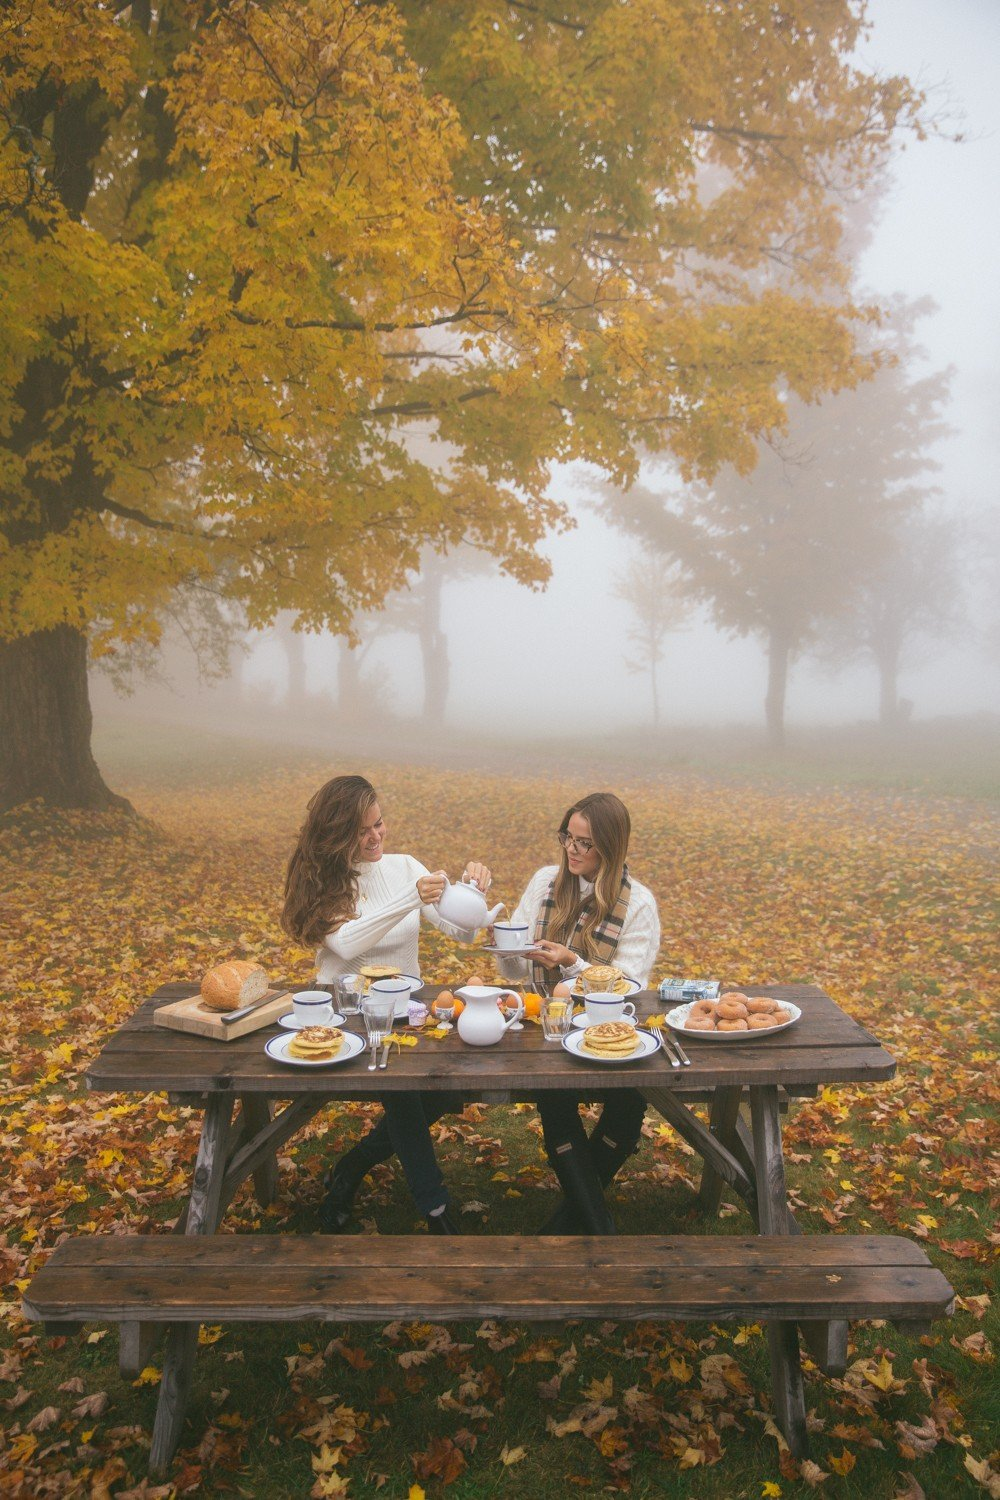 Picnics with your bestie